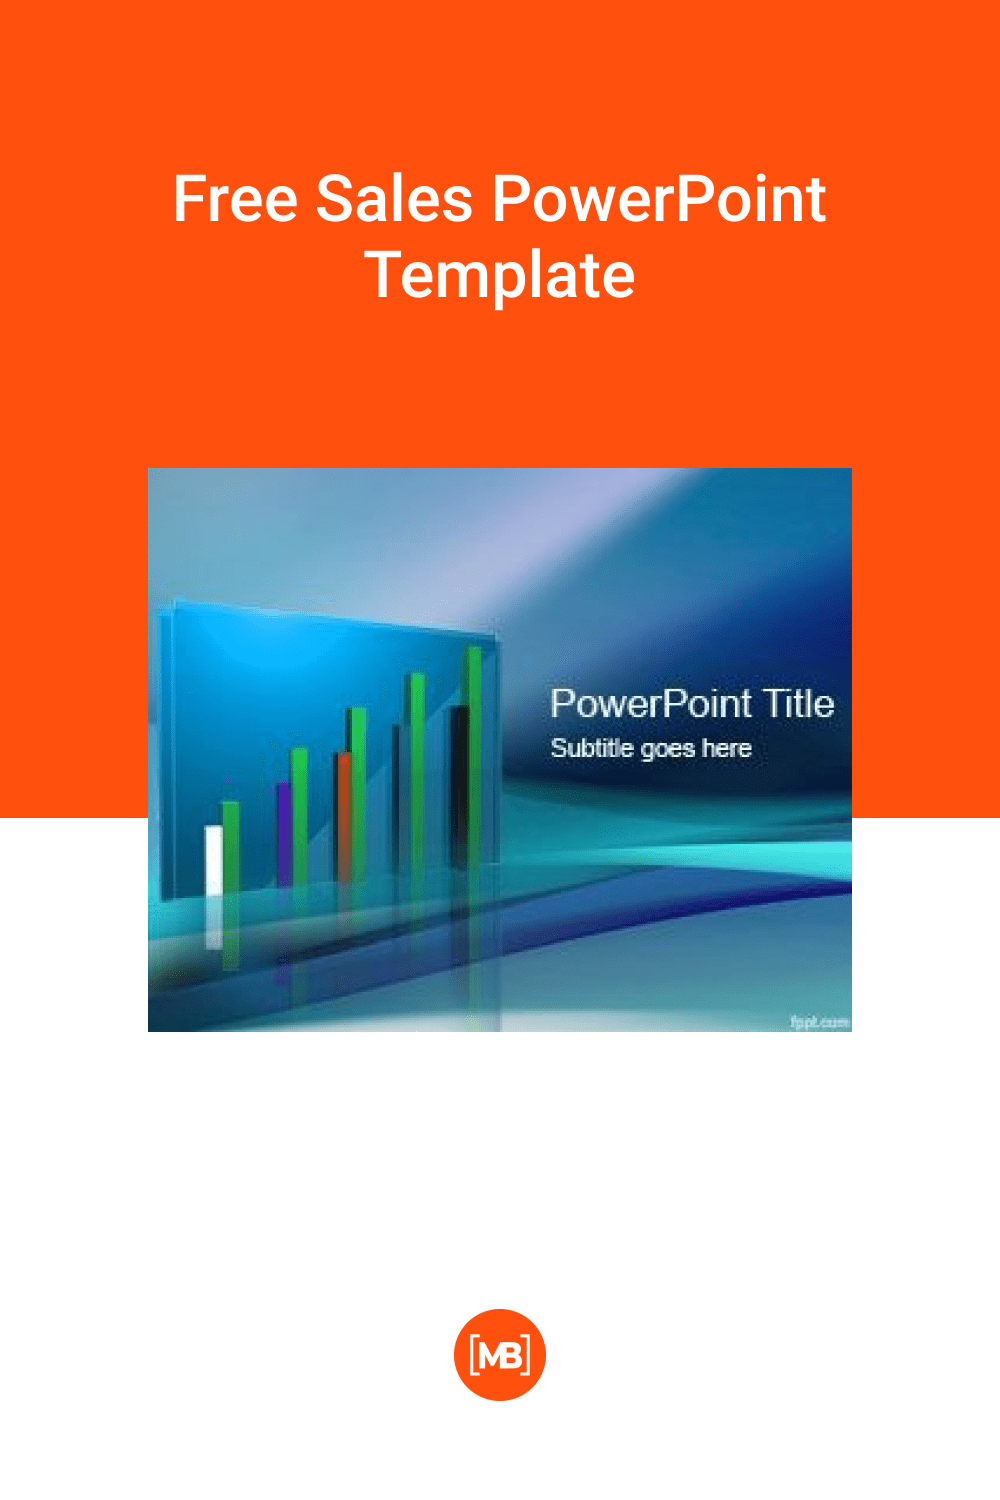 Free Sales PowerPoint Template.